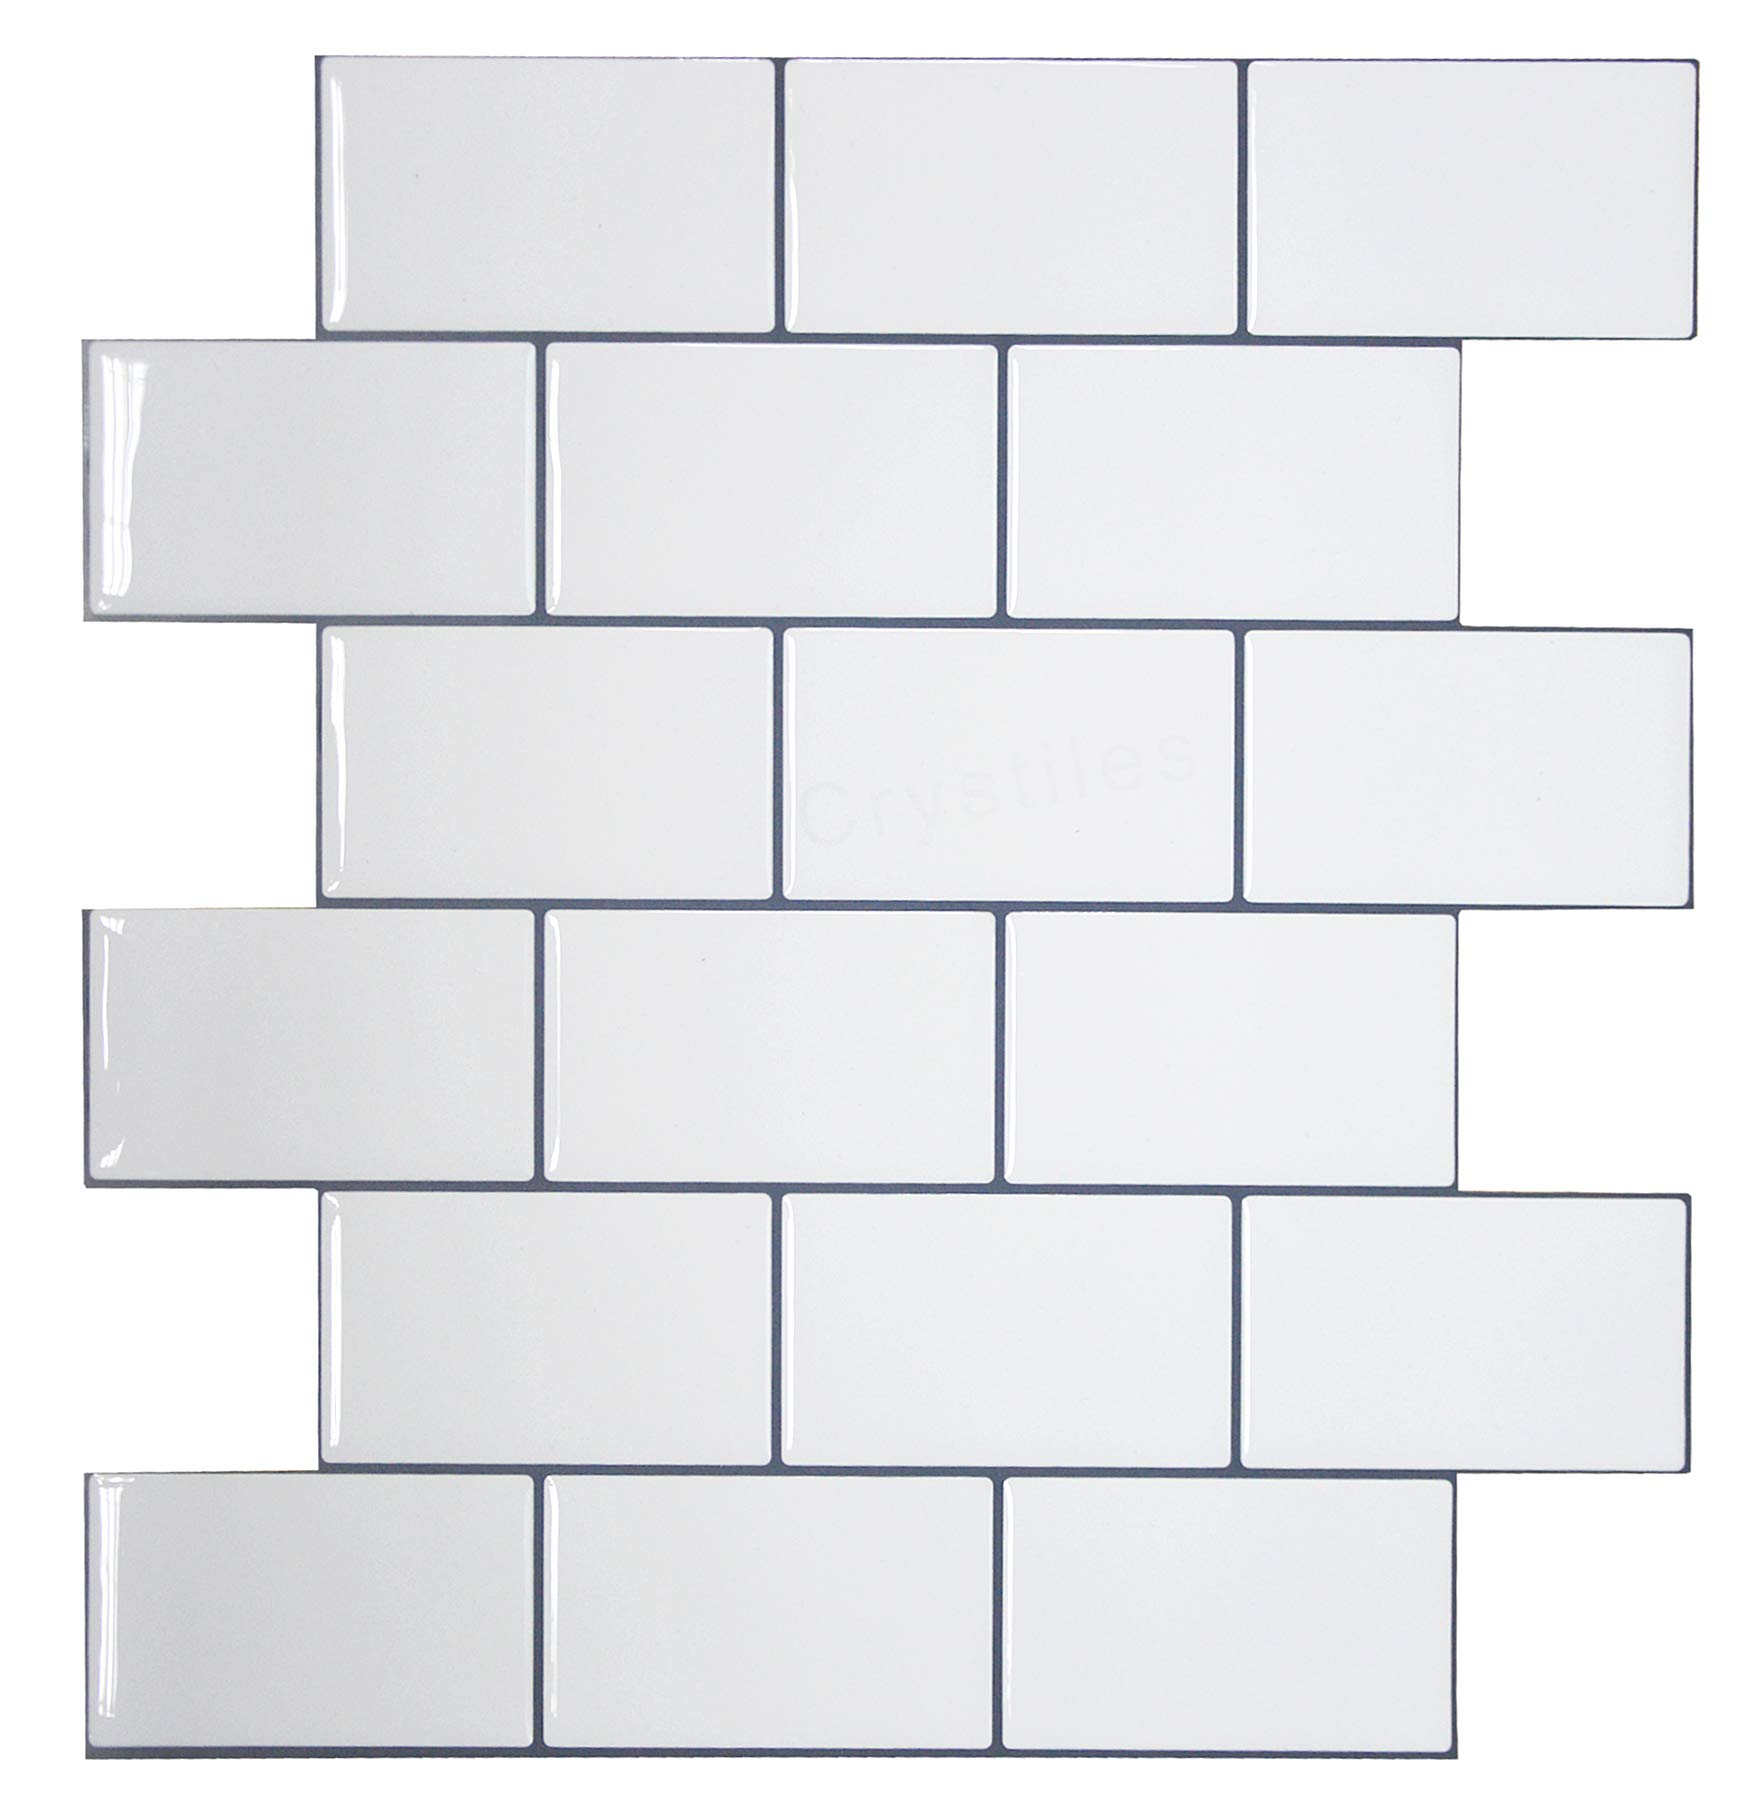 Crystiles 12''x12'' Subway White Vinyl Peel and Stick Backsplash Tile, Pro Series Thicker Version, 4-Sheet Pack